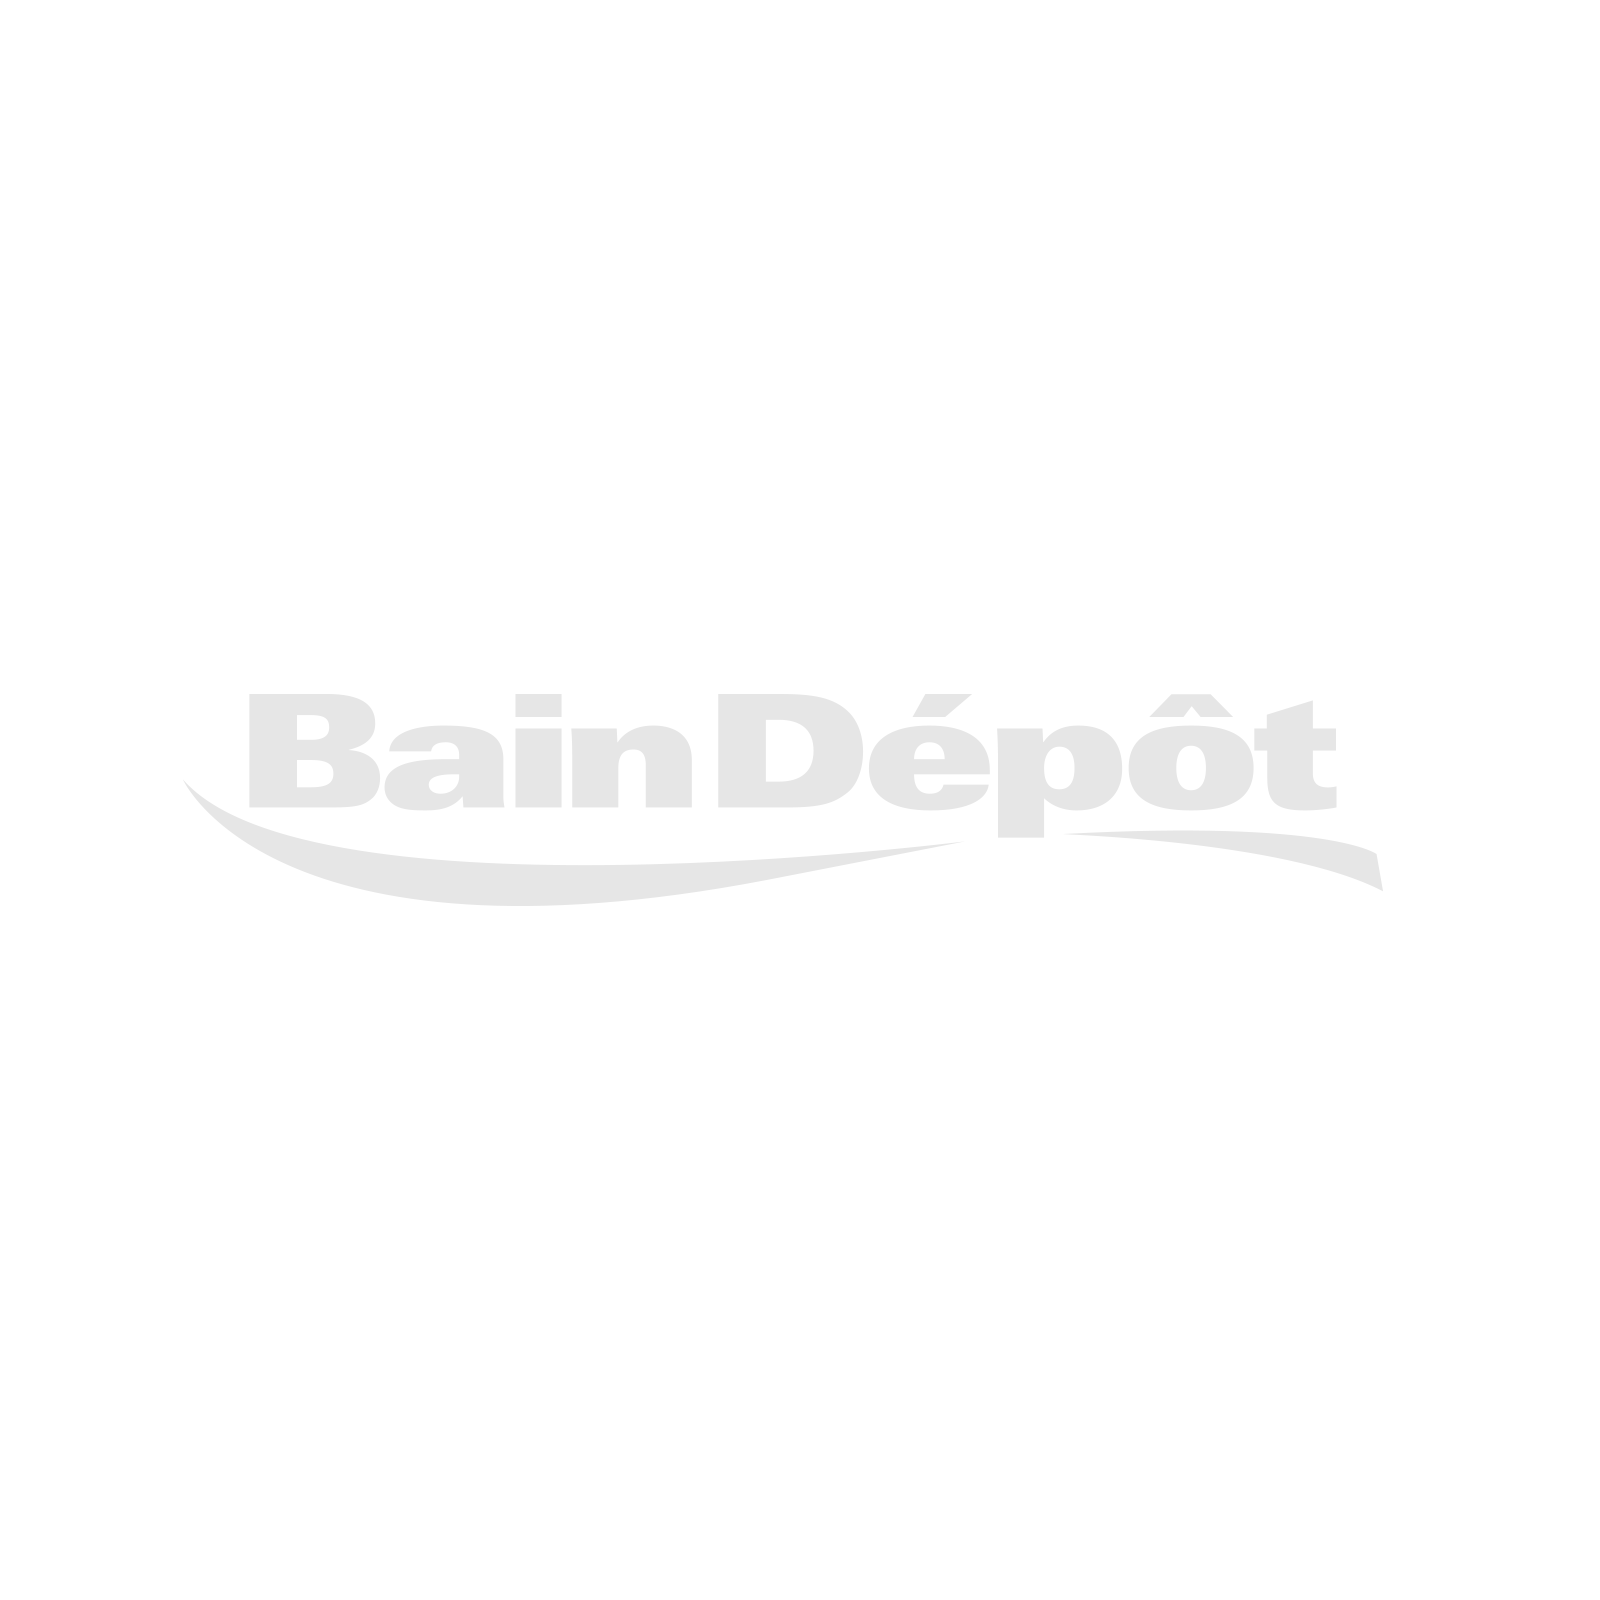 "60"" x 36"" rectangular shower base for universal installation with linear drain included"